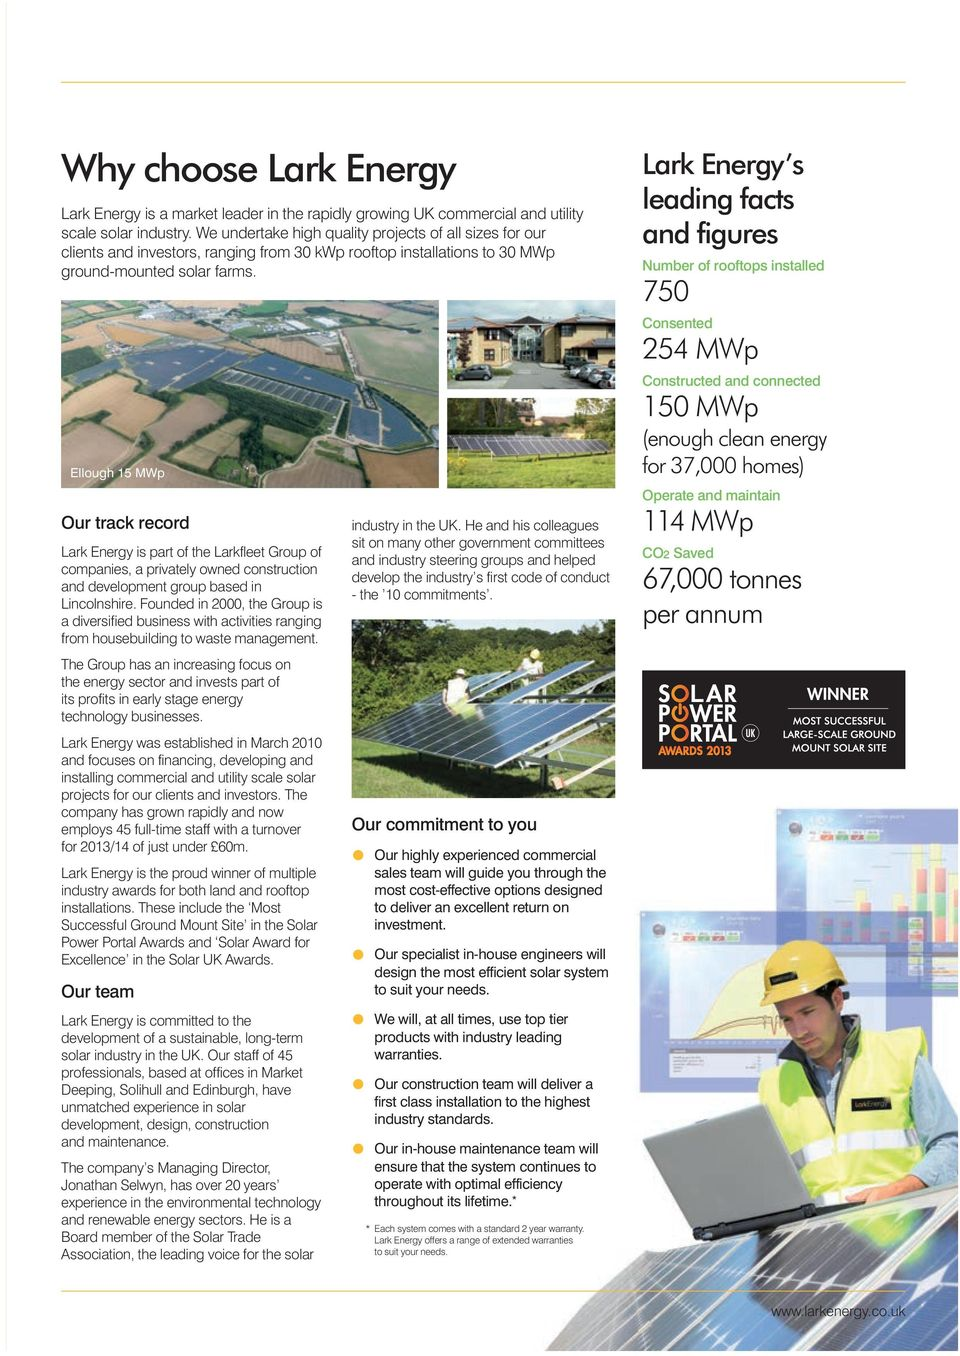 Ellough 15 MWp Our track record Lark Energy is part of the Larkfleet Group of companies, a privately owned construction and development group based in Lincolnshire.